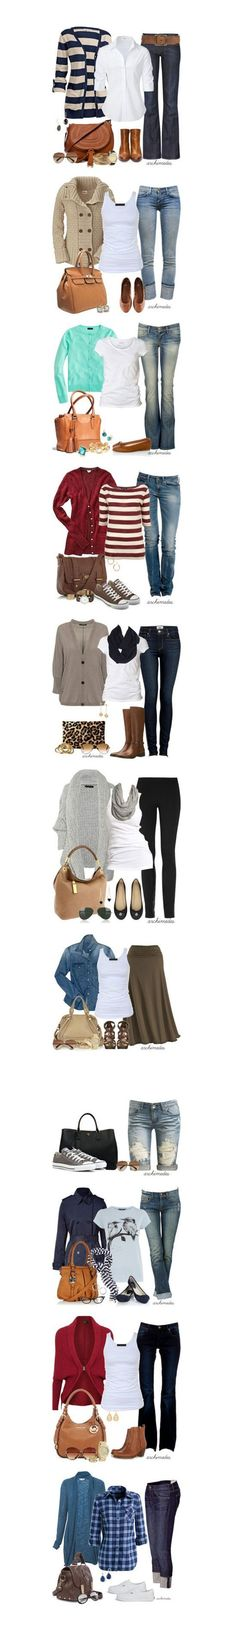 15 Casual Winter Fashion Trends Looks 2013 For Girls Women 1 15 Casual Winter Fashion Trends & Looks 2013 For Girls & Women